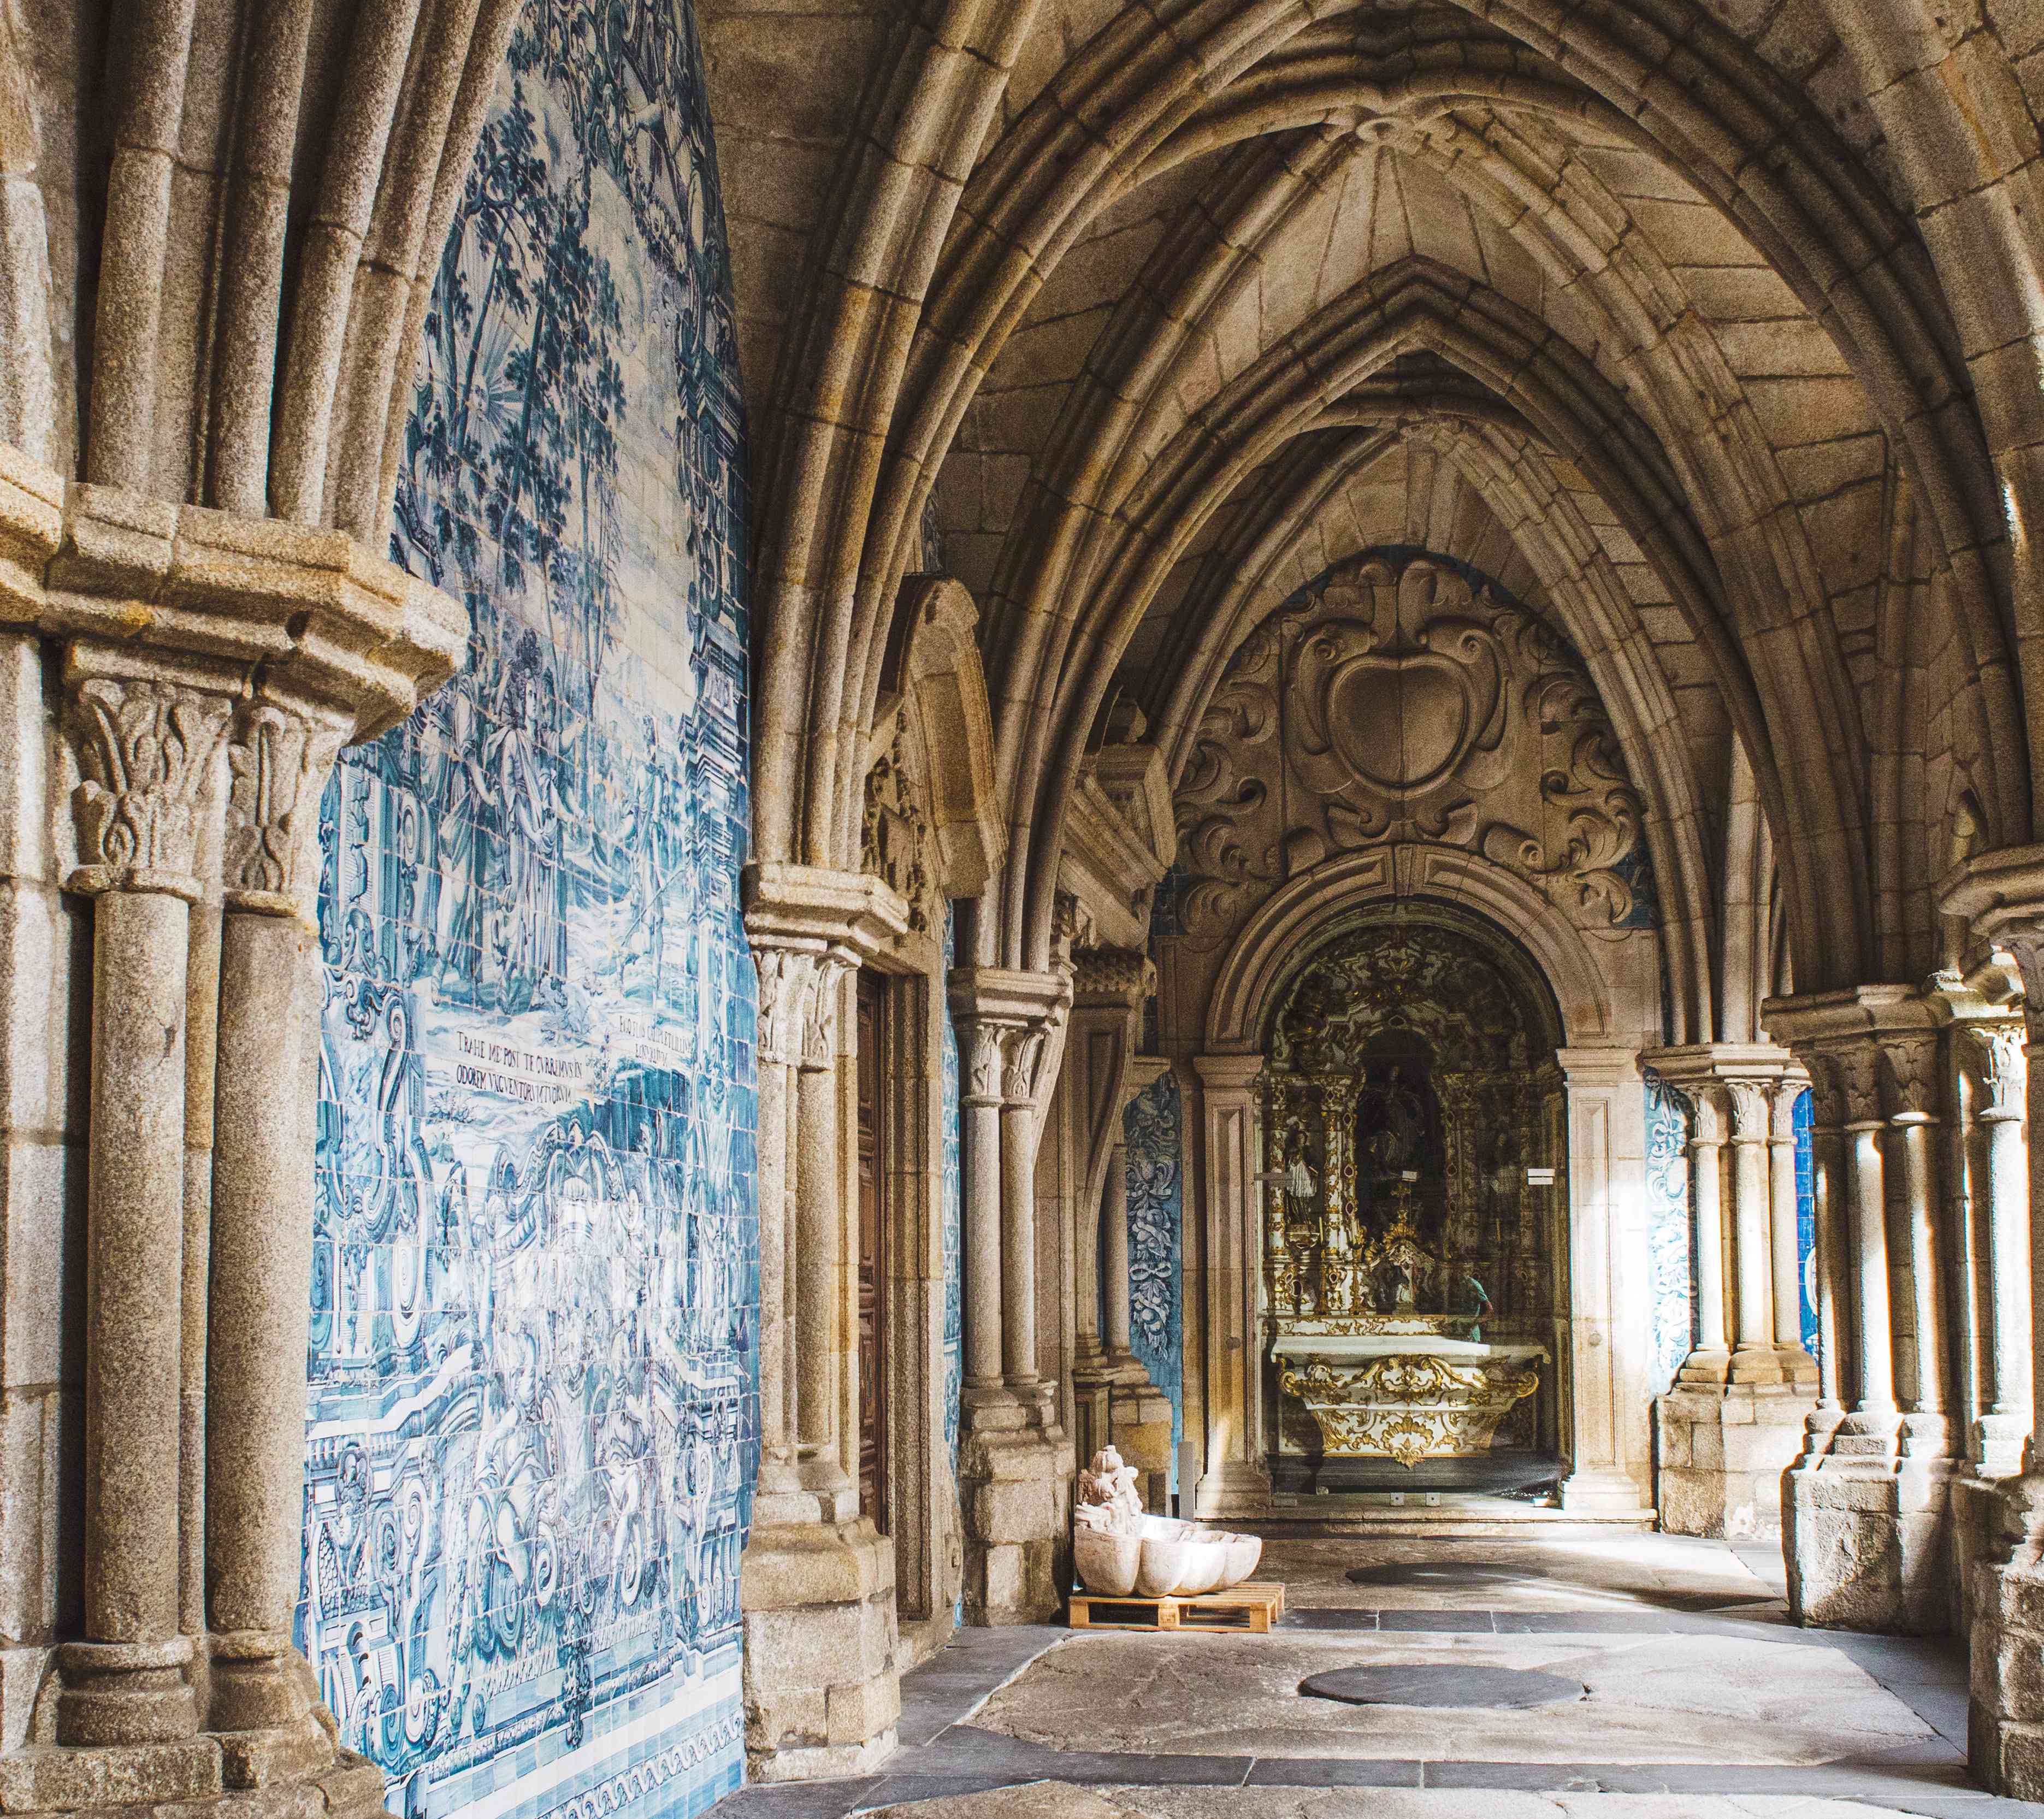 Blue Tile mural in the Porto Cathedral